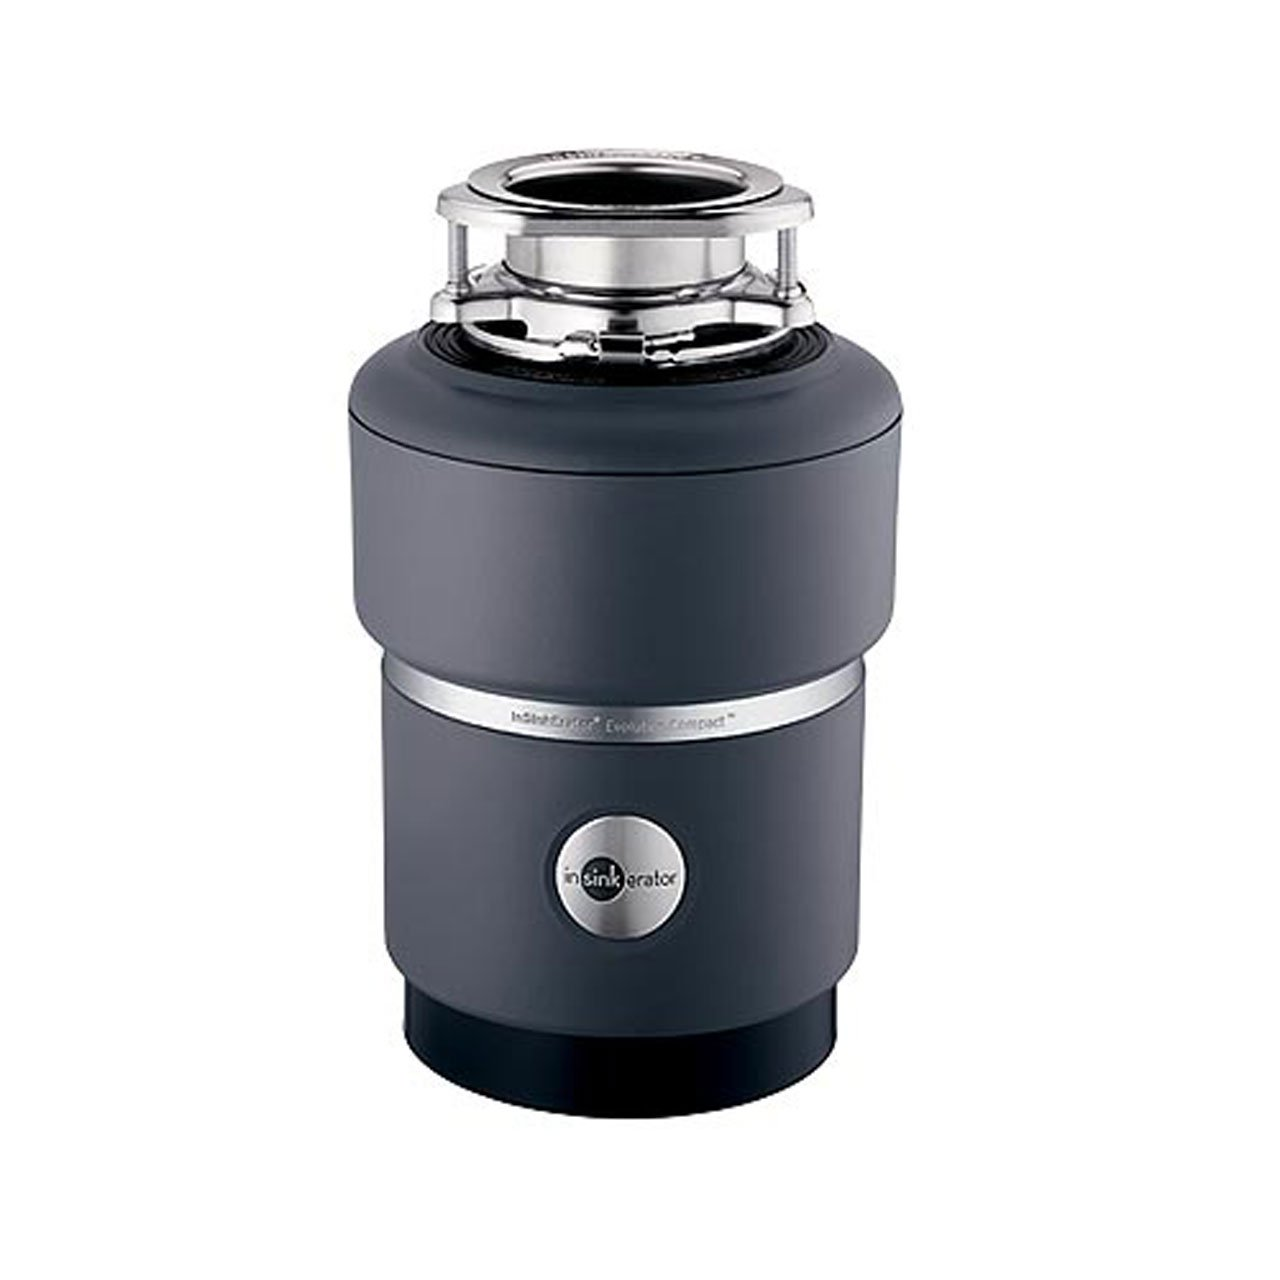 InSinkErator PRO750 Pro Series 3/4 HP Food Waste Disposal with Evolution Series Technology by InSinkErator (Image #1)